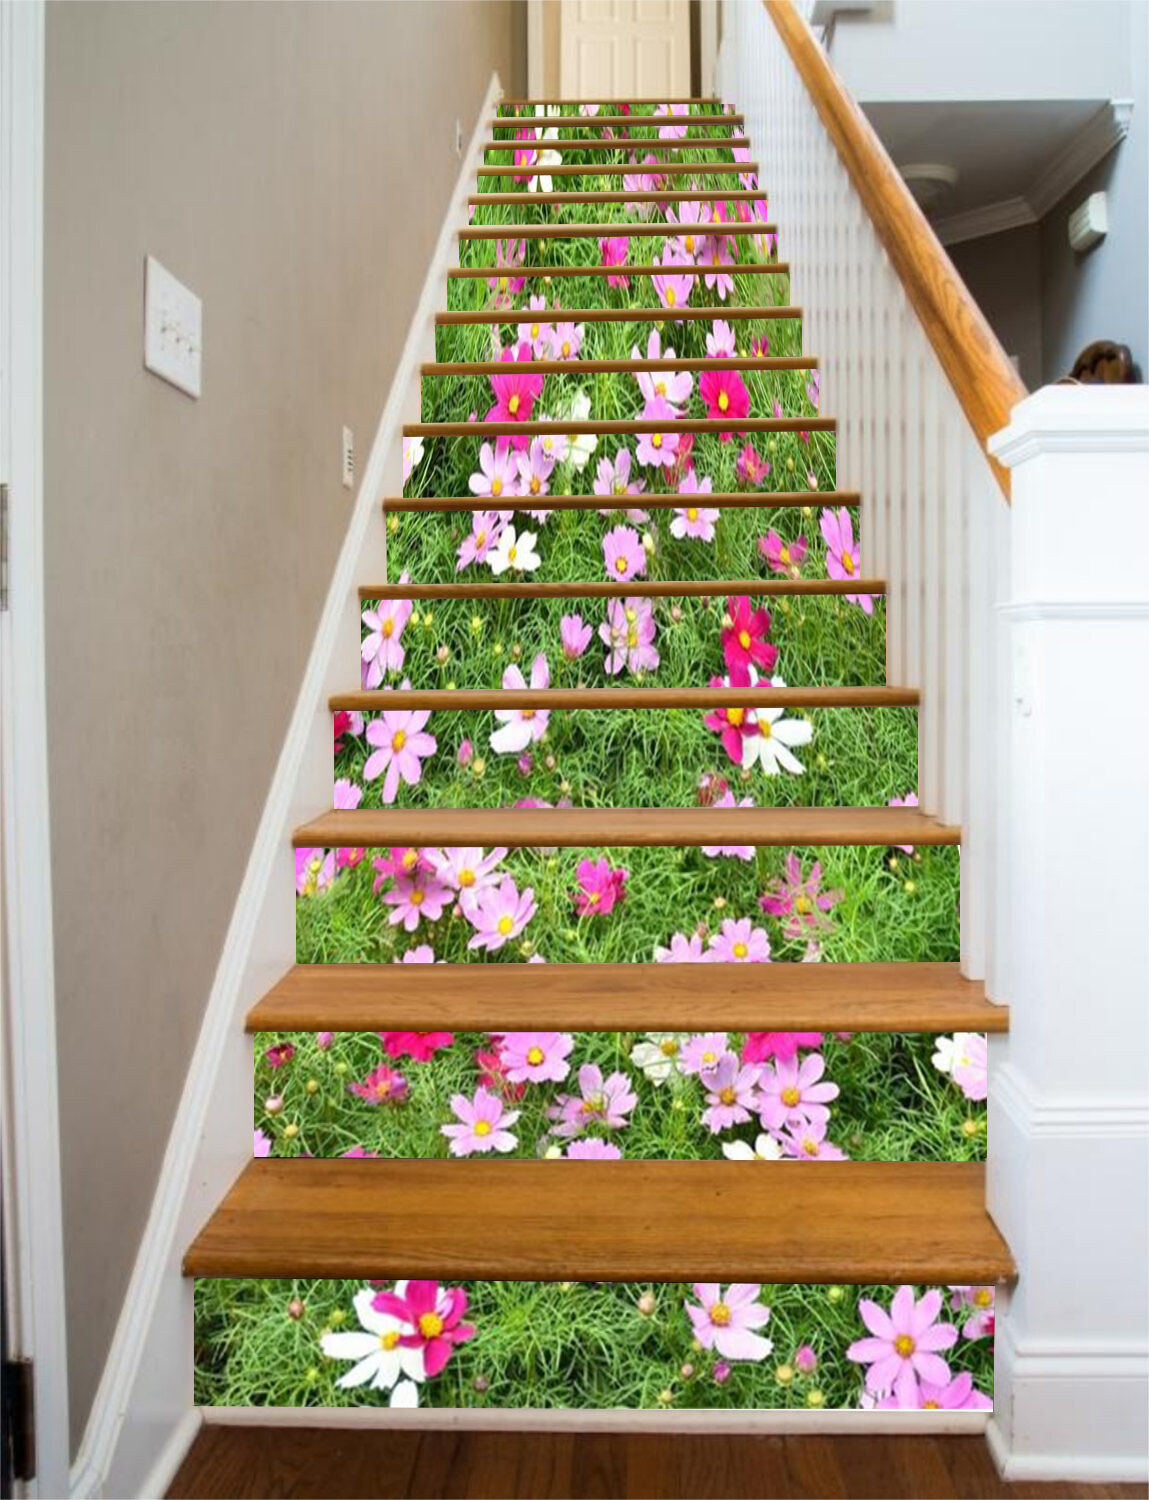 3D Plants flowers 6 Stair Risers Decoration Photo Mural Vinyl Decal Wallpaper UK